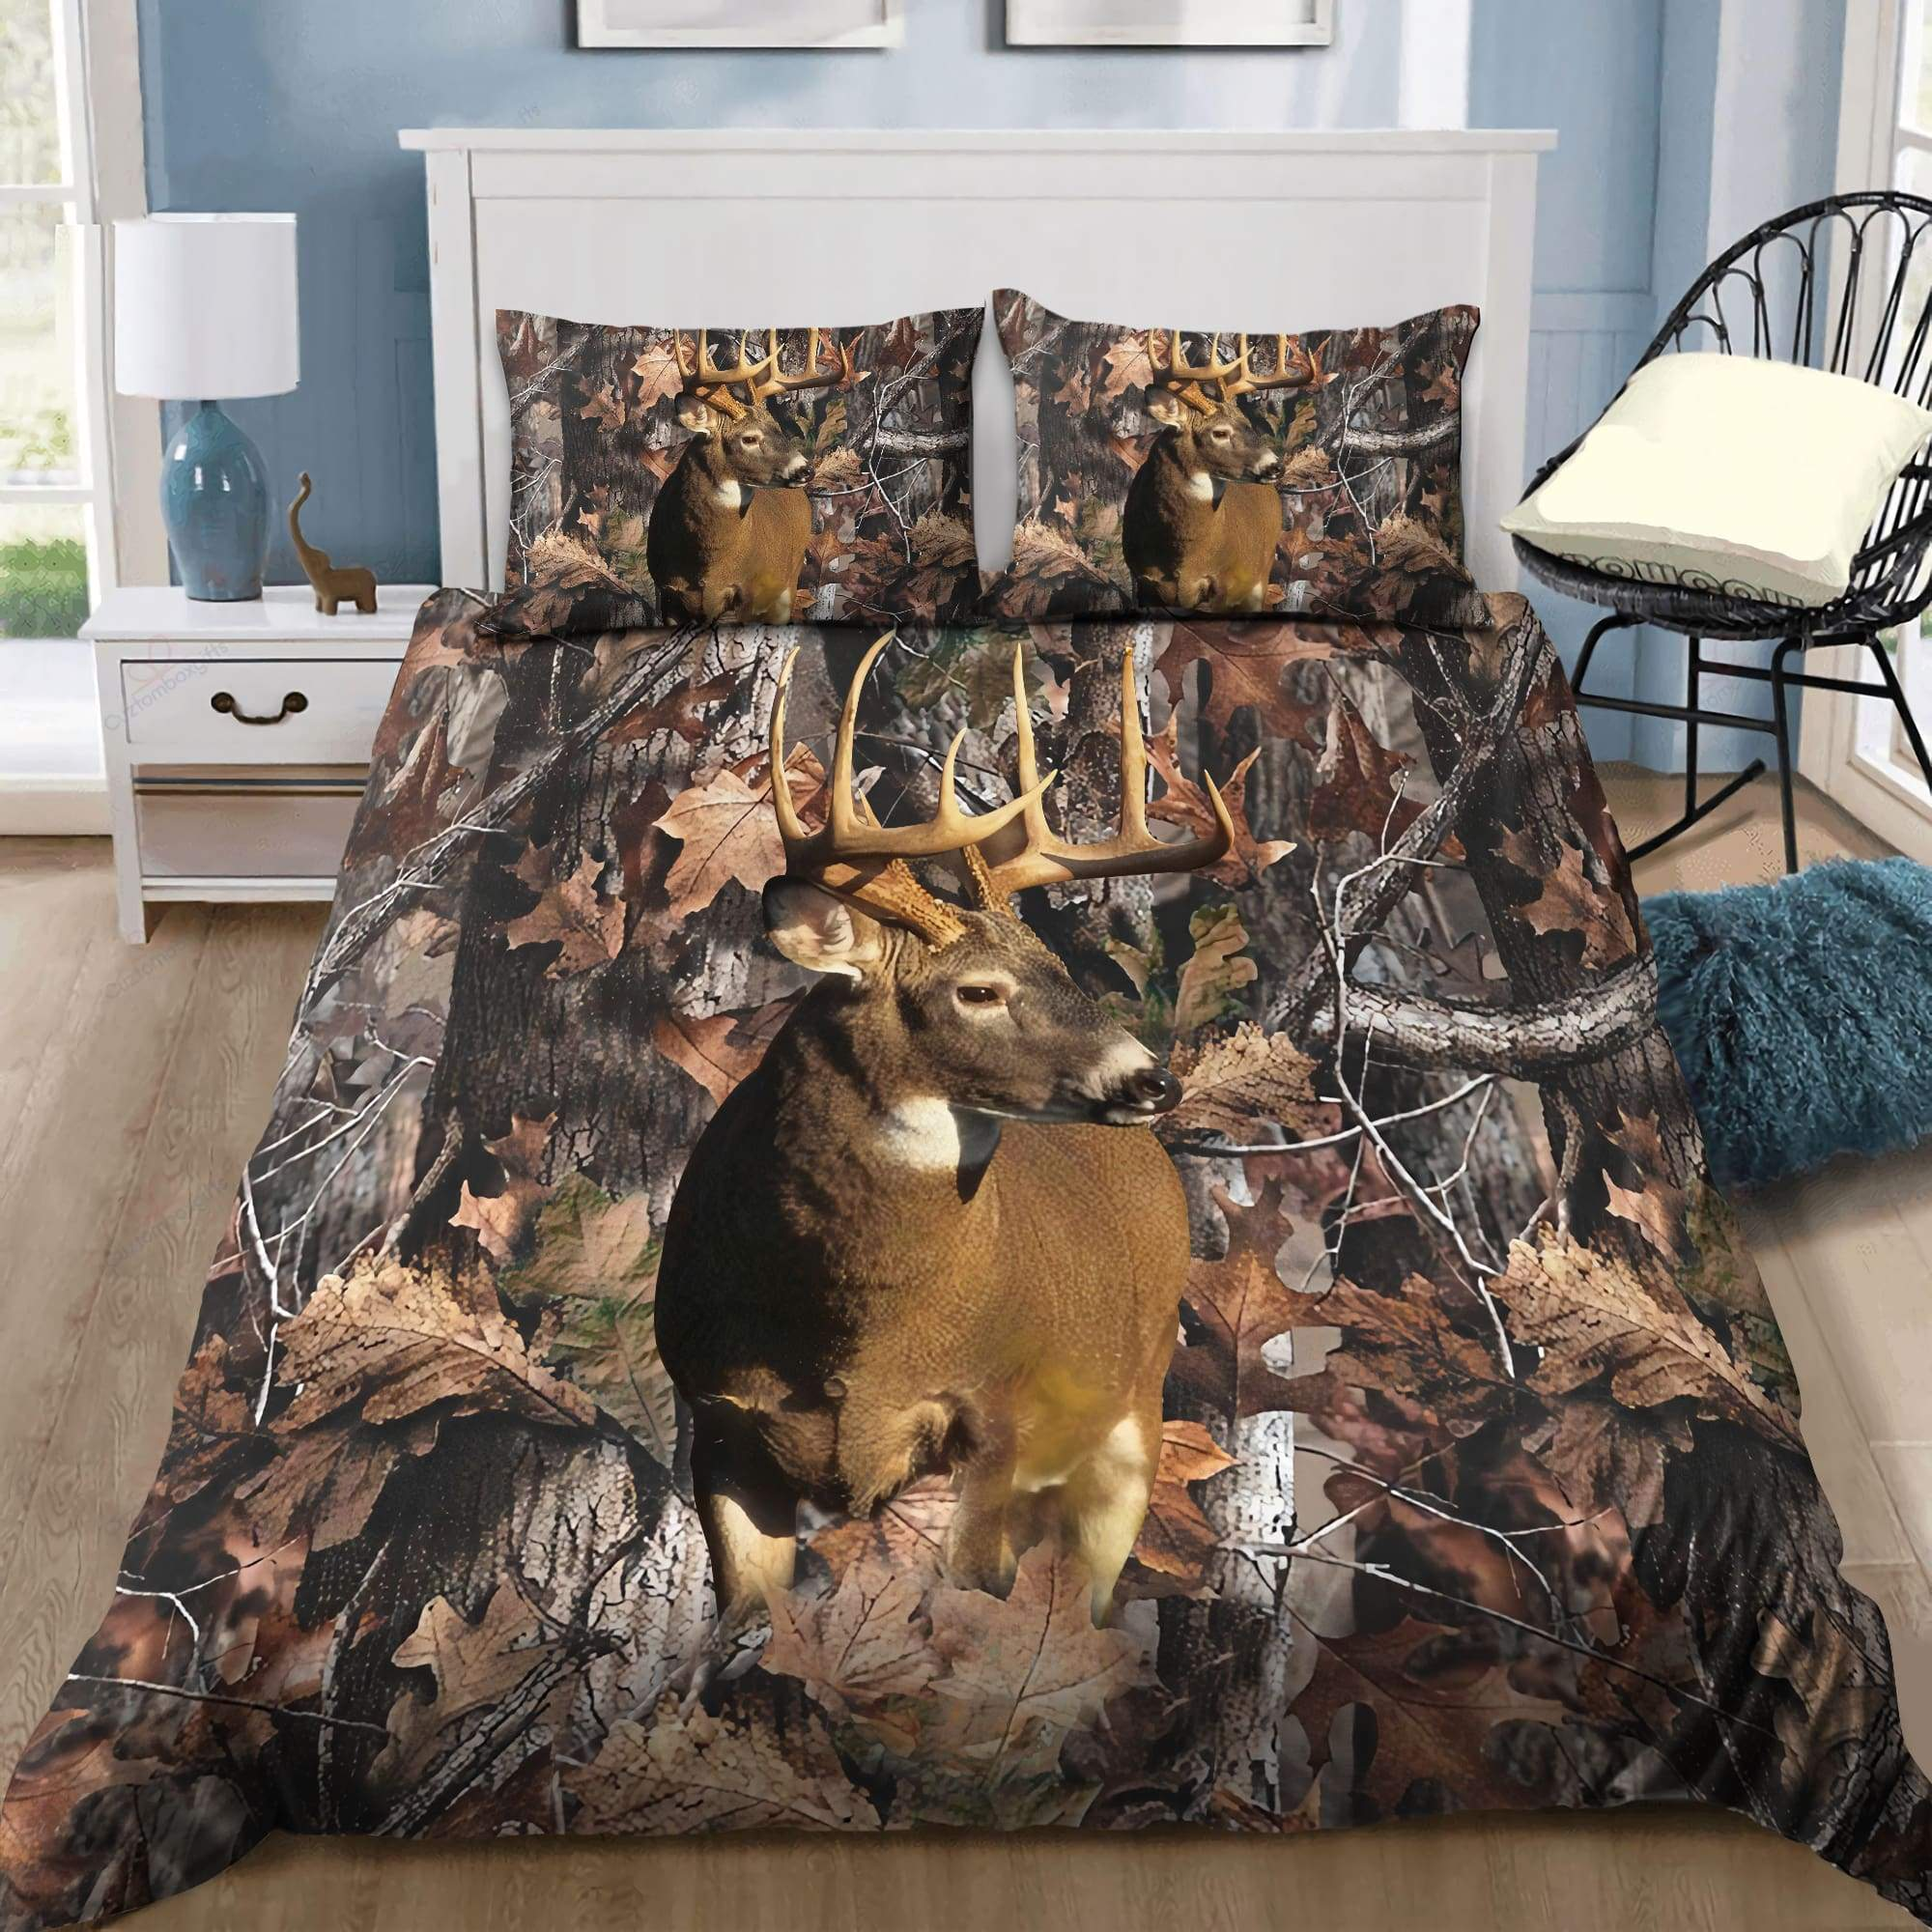 Deer and Deer Hunting bedding set MH150820S